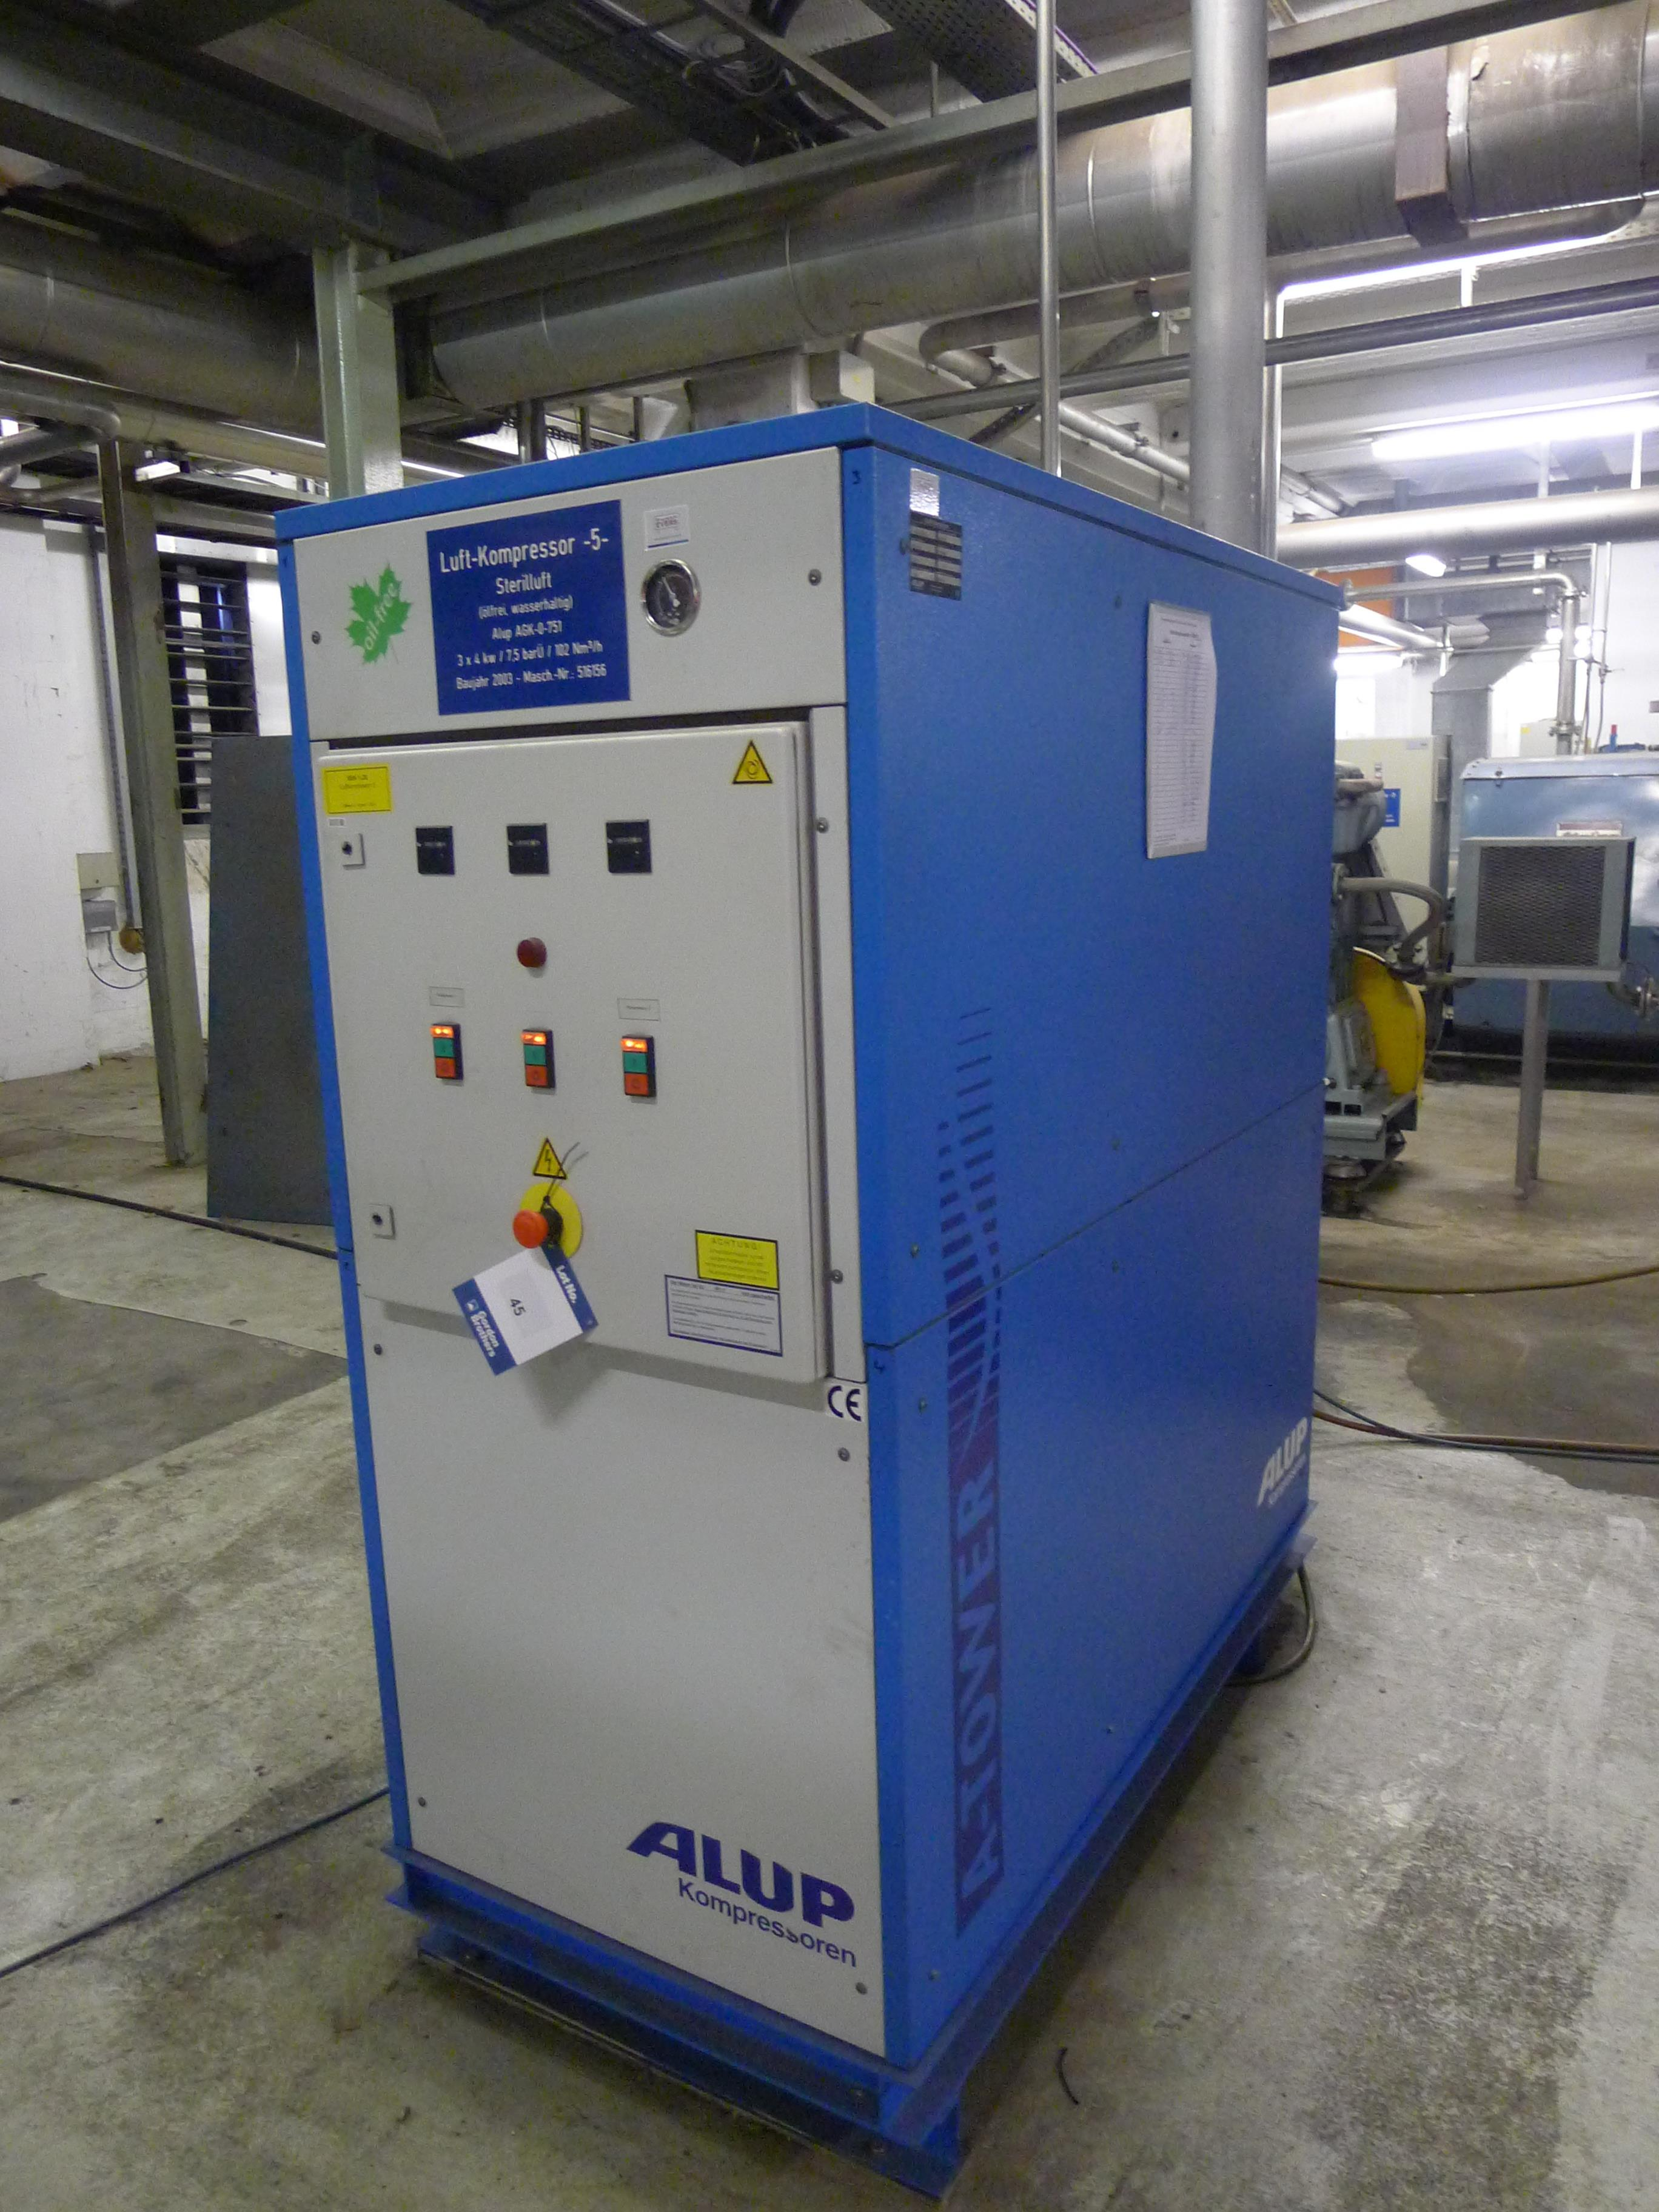 Lot 45 - Alup type A-Tower compressor 102 Nm3/hr. 7.5 bar. New 2003. (Dismantling and Loading Fee: €250)